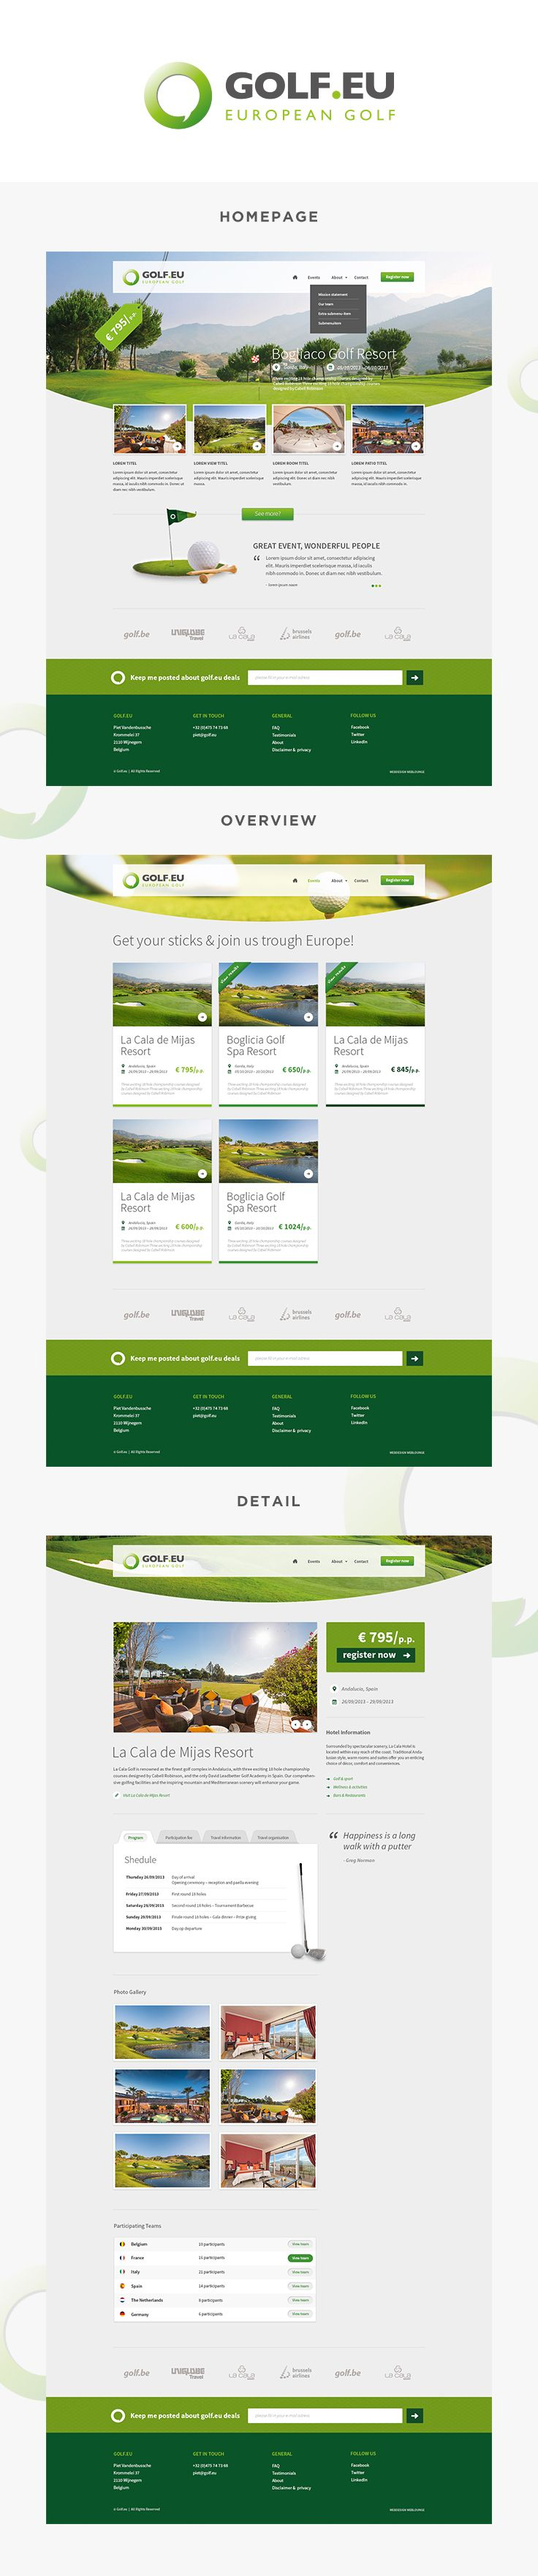 #webdesign for Golf.eu #golf #layout #design by www.weblounge.be